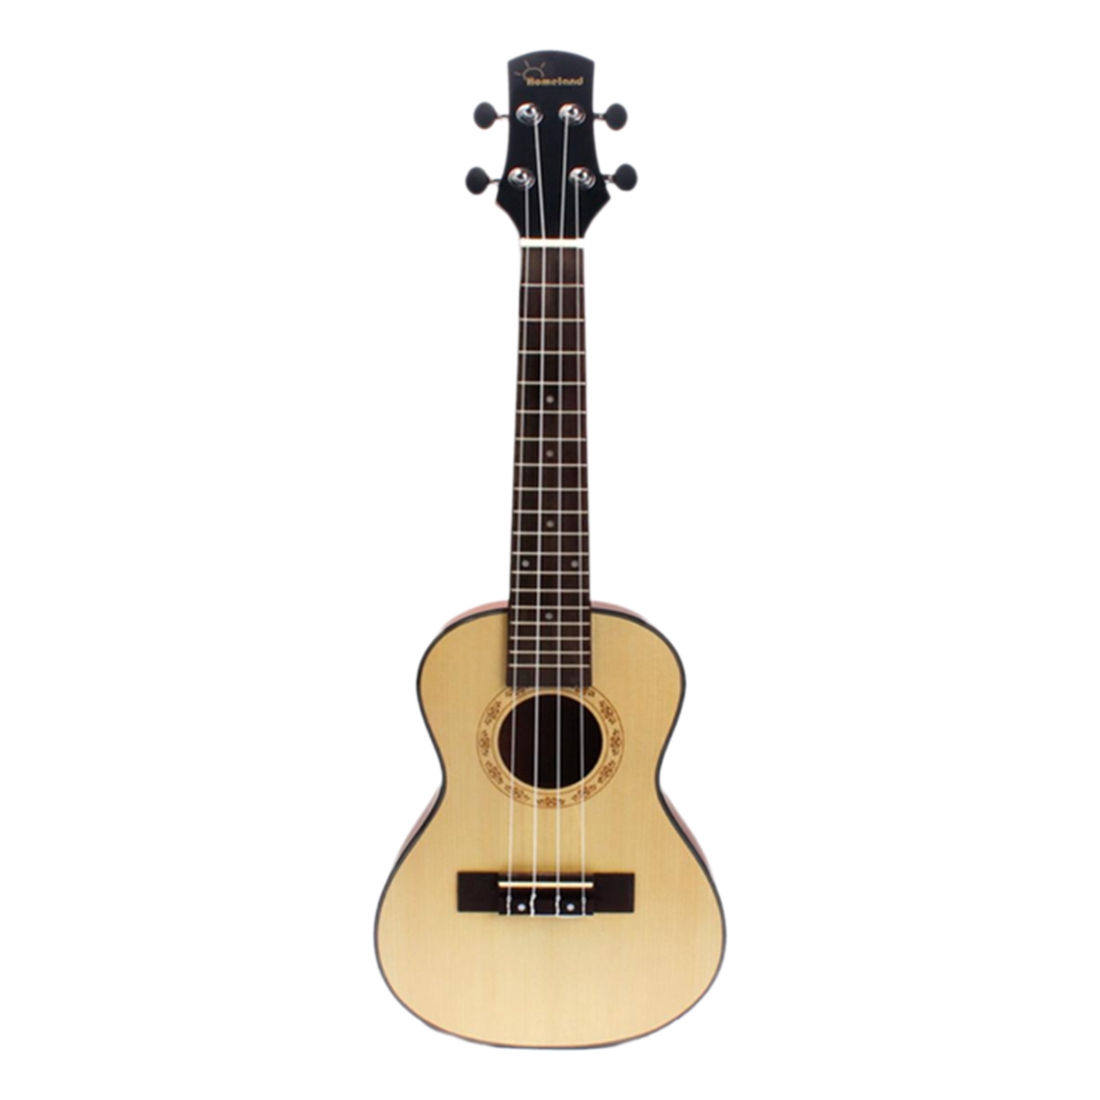 24 Compact Ukelele Hawaiian Spruce Top Mahogany Aquila Rosewood Fretboard Bridge Stringed Instrument 4 Strings with Gig Bag 12mm waterproof soprano concert ukulele bag case backpack 23 24 26 inch ukelele beige mini guitar accessories gig pu leather